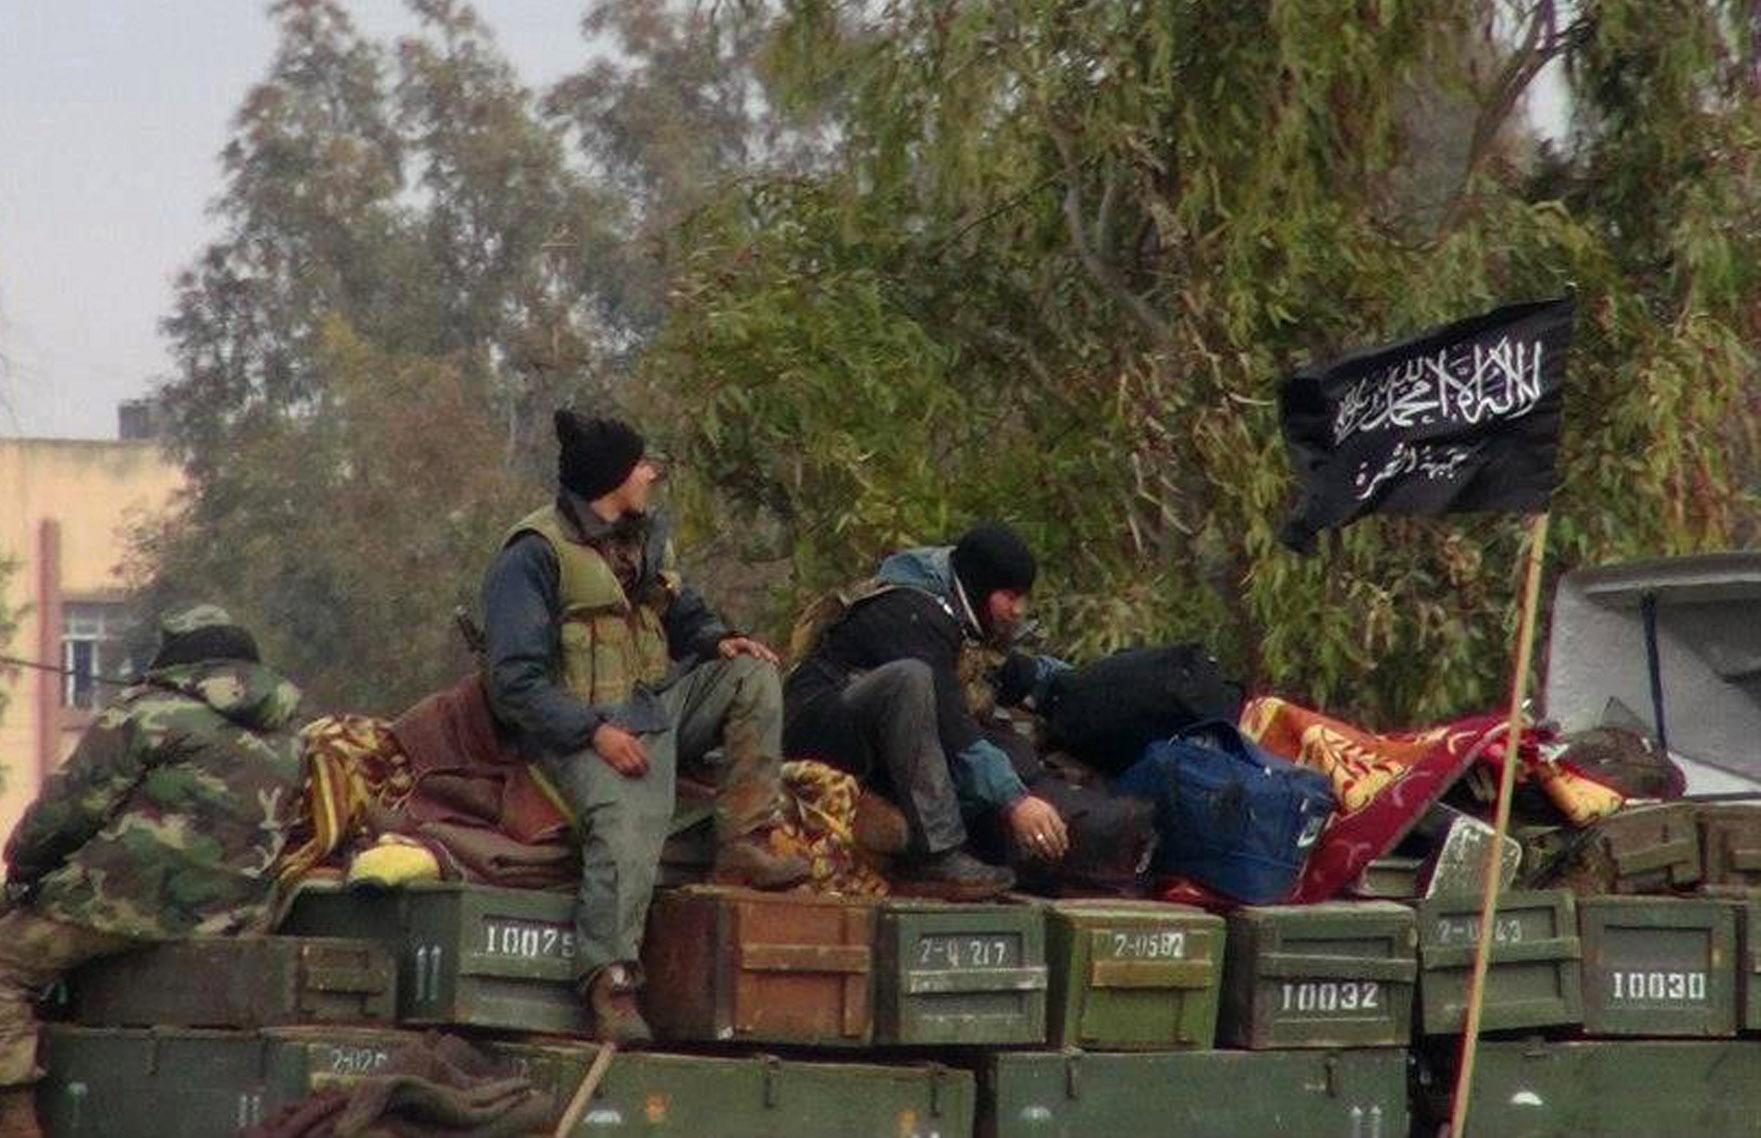 """FILE - In this Friday, Jan. 11, 2013 file citizen journalism image provided by Edlib News Network, ENN, which has been authenticated based on its contents and other AP reporting, shows rebels from al-Qaida affiliated Jabhat al-Nusra, as they sit on a truck full of ammunition, at Taftanaz air base, that was captured by the rebels, in Idlib province, northern Syria. Al-Qaida's branch in Iraq said it has merged with Syria's extremist Jabhat al-Nusra, a move that shows the rising confidence of radicals within the Syrian rebel movement and is likely to trigger renewed fears among its international backers. Arabic on the flag, right, reads, """"There is no God only God and Mohamad his prophet, Jabhat al-Nusra."""" (AP Photo/Edlib News Network ENN, File)"""